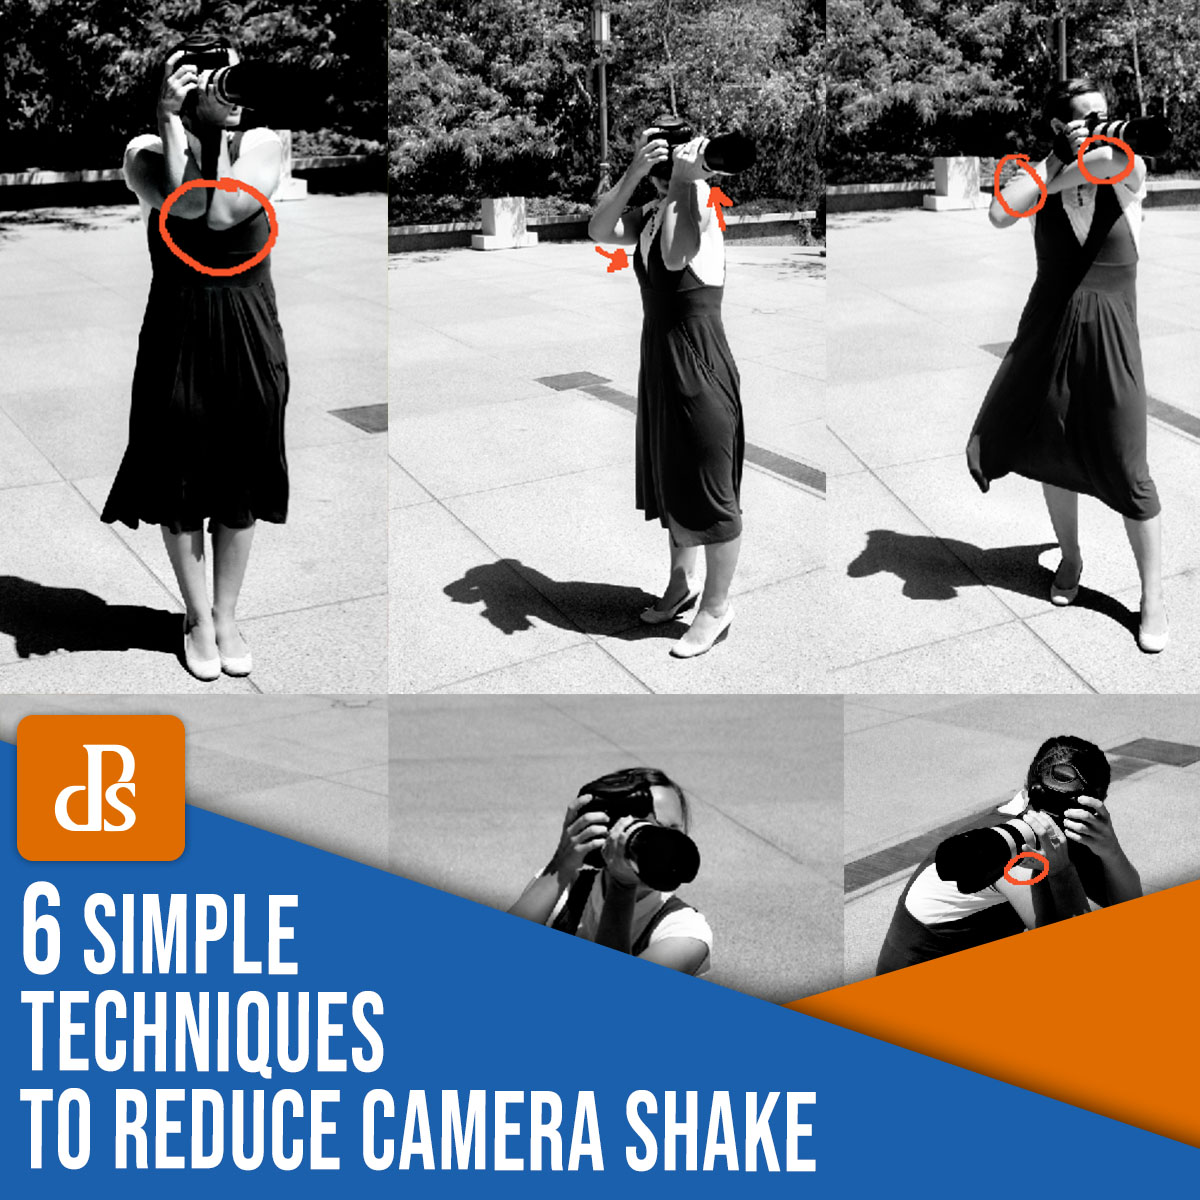 6 simple techniques to reduce camera shake